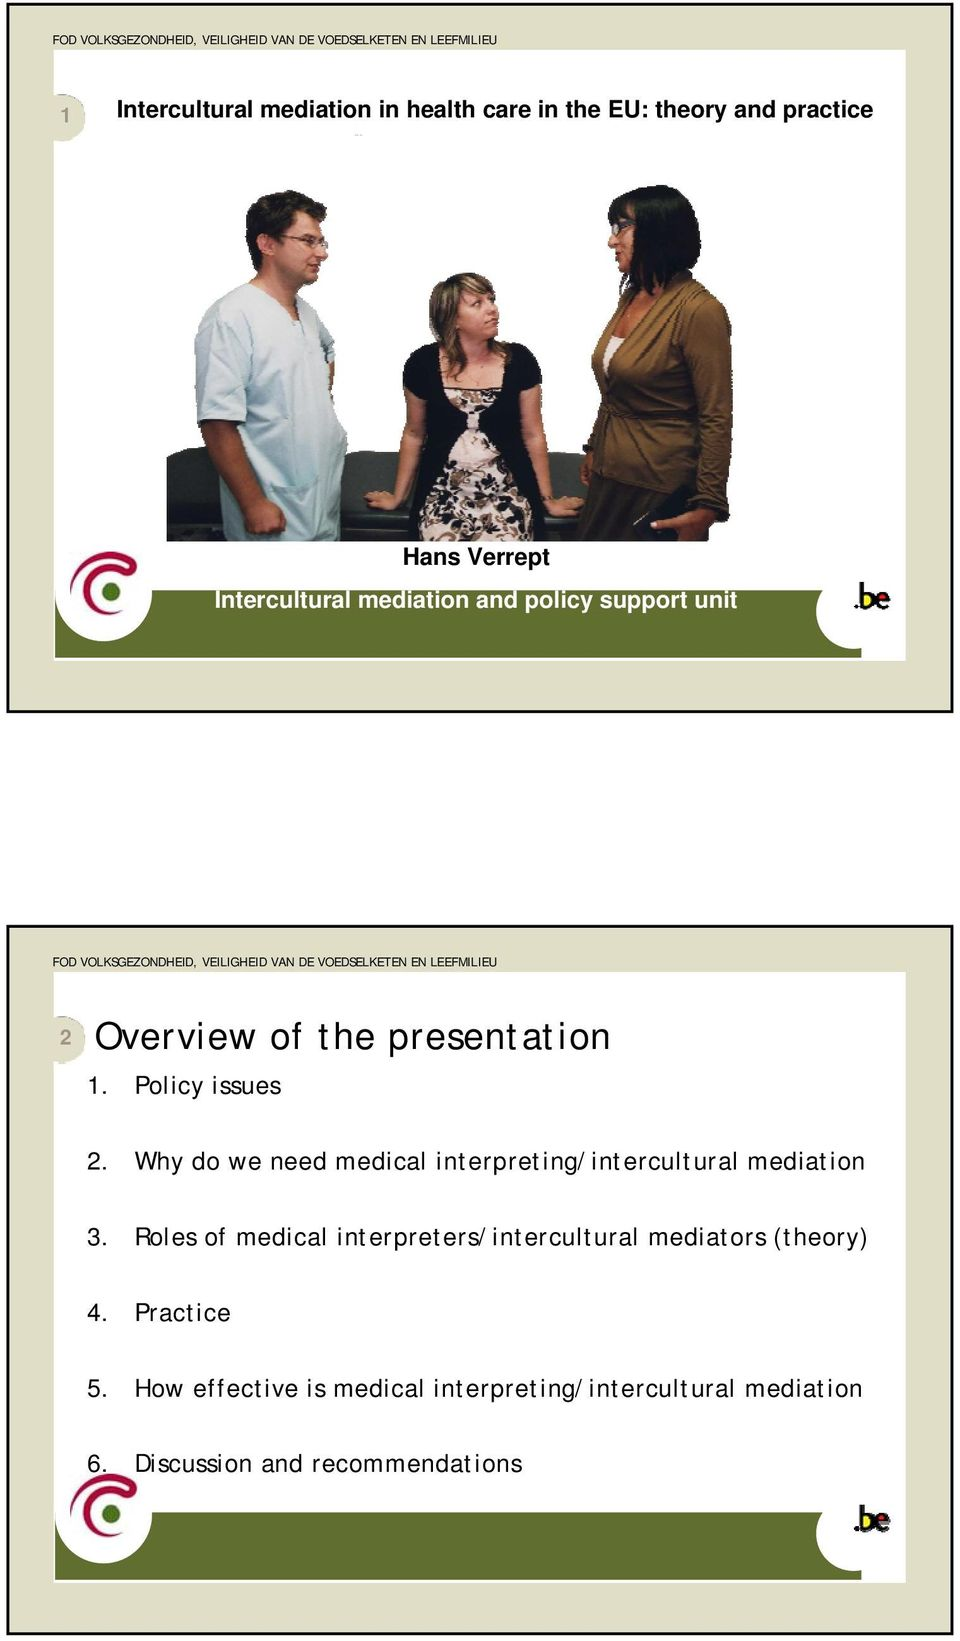 Why do we need medical interpreting/intercultural mediation 3.